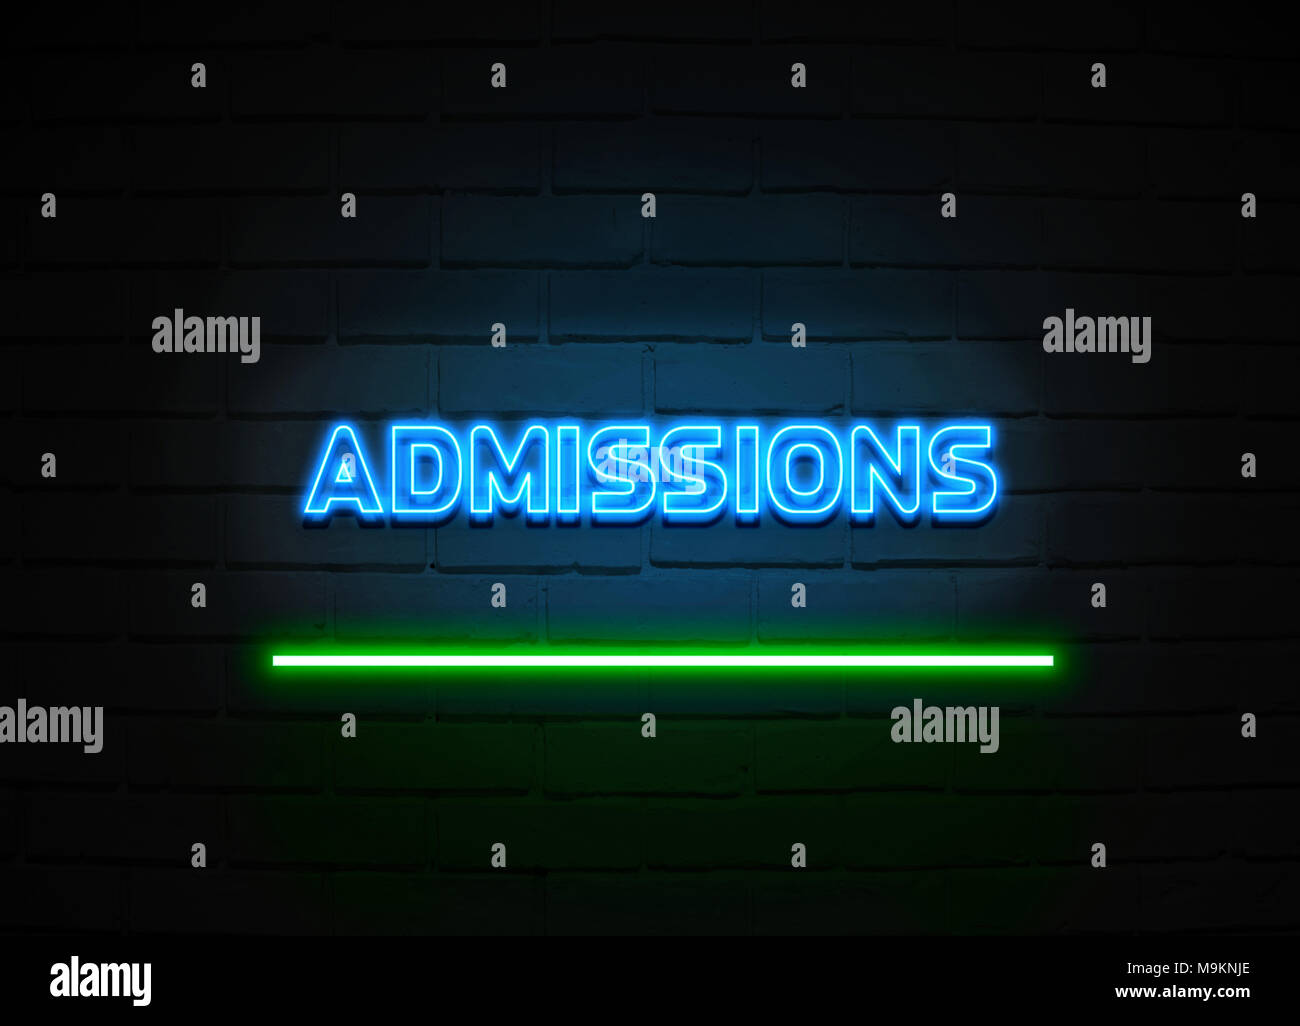 Admissions neon sign - Glowing Neon Sign on brickwall wall - 3D rendered royalty free stock illustration. - Stock Image